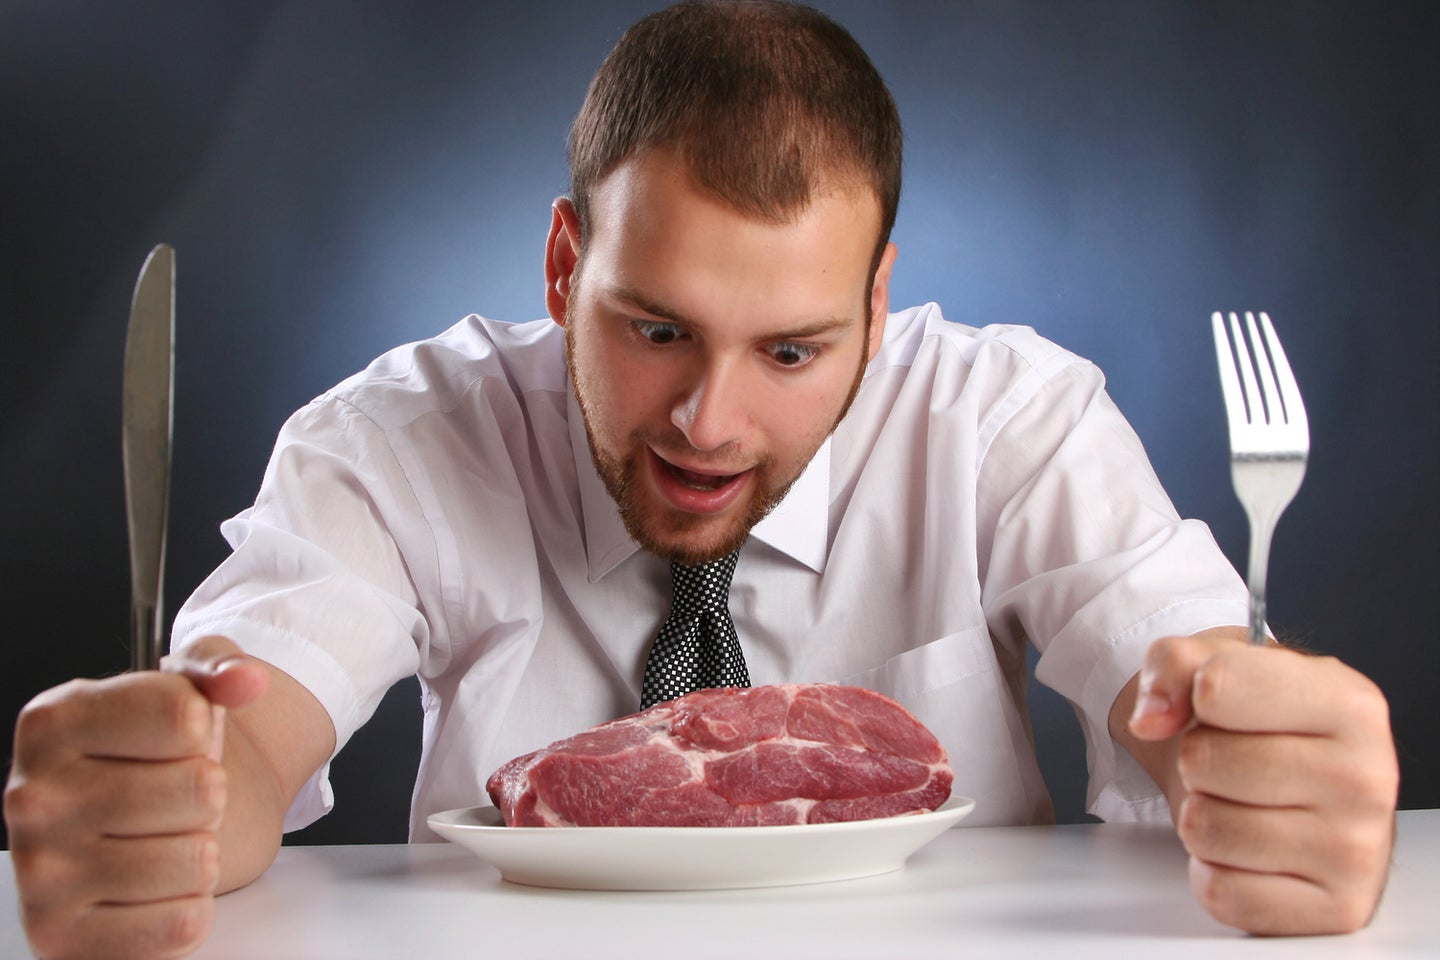 People think beef is manly, and that's a big problem